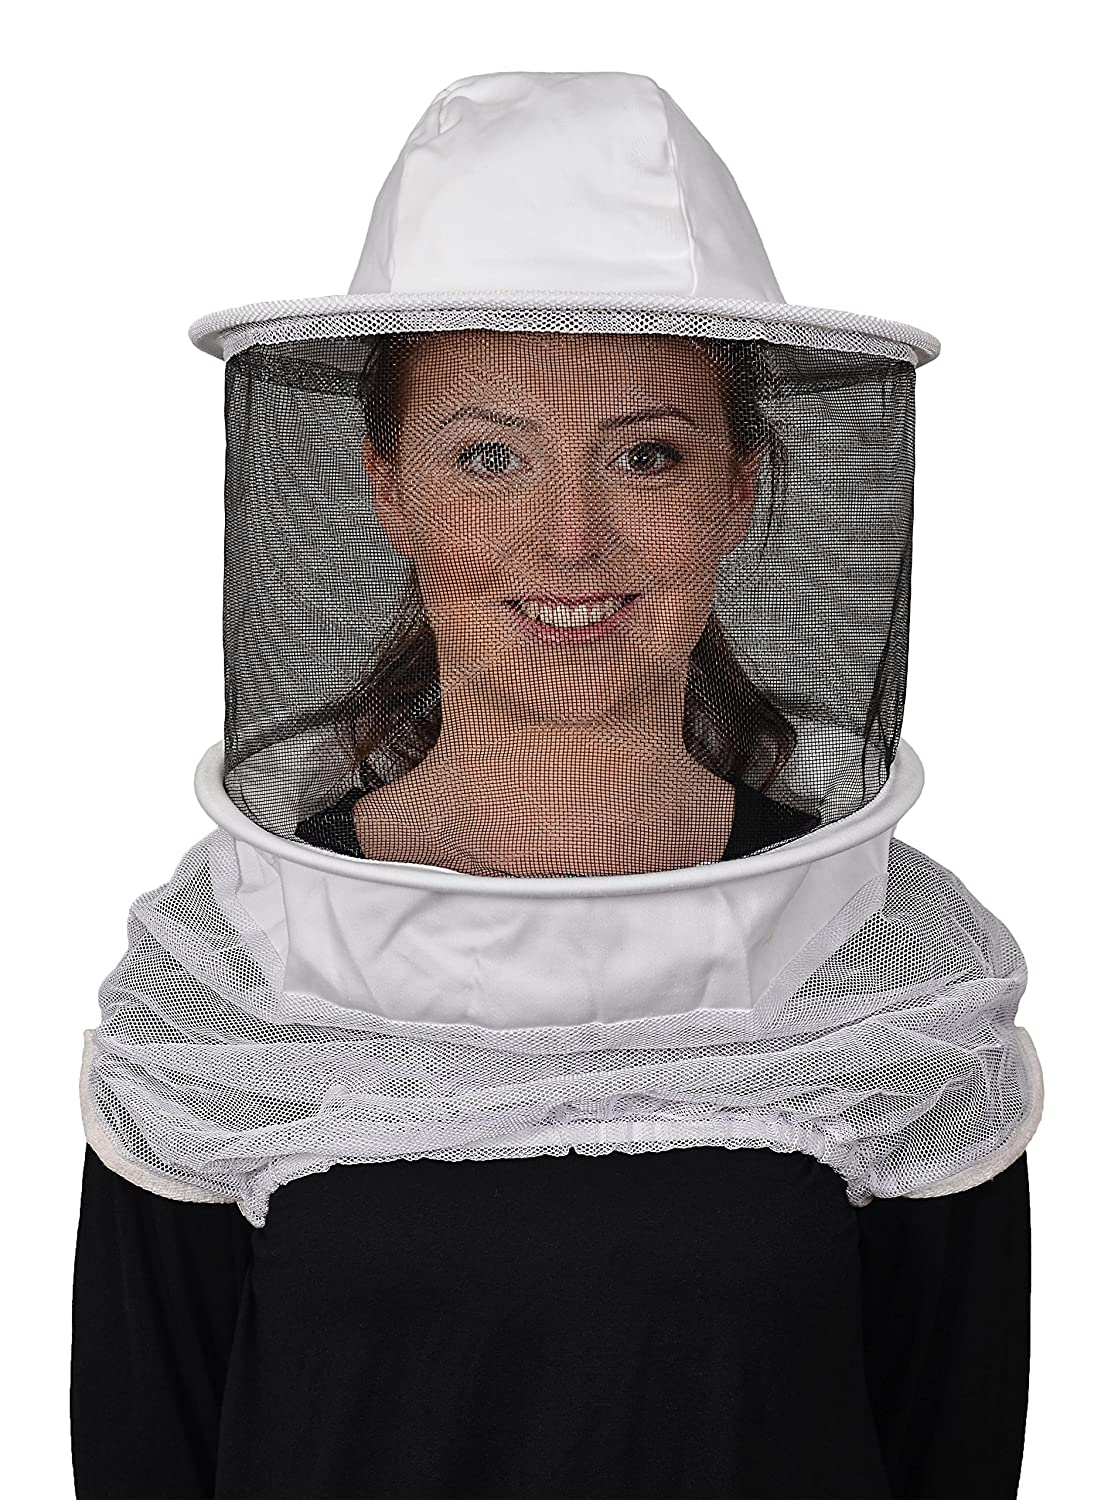 Humble Bee 210-ST Polycotton Beekeeping Veil with Round Hat